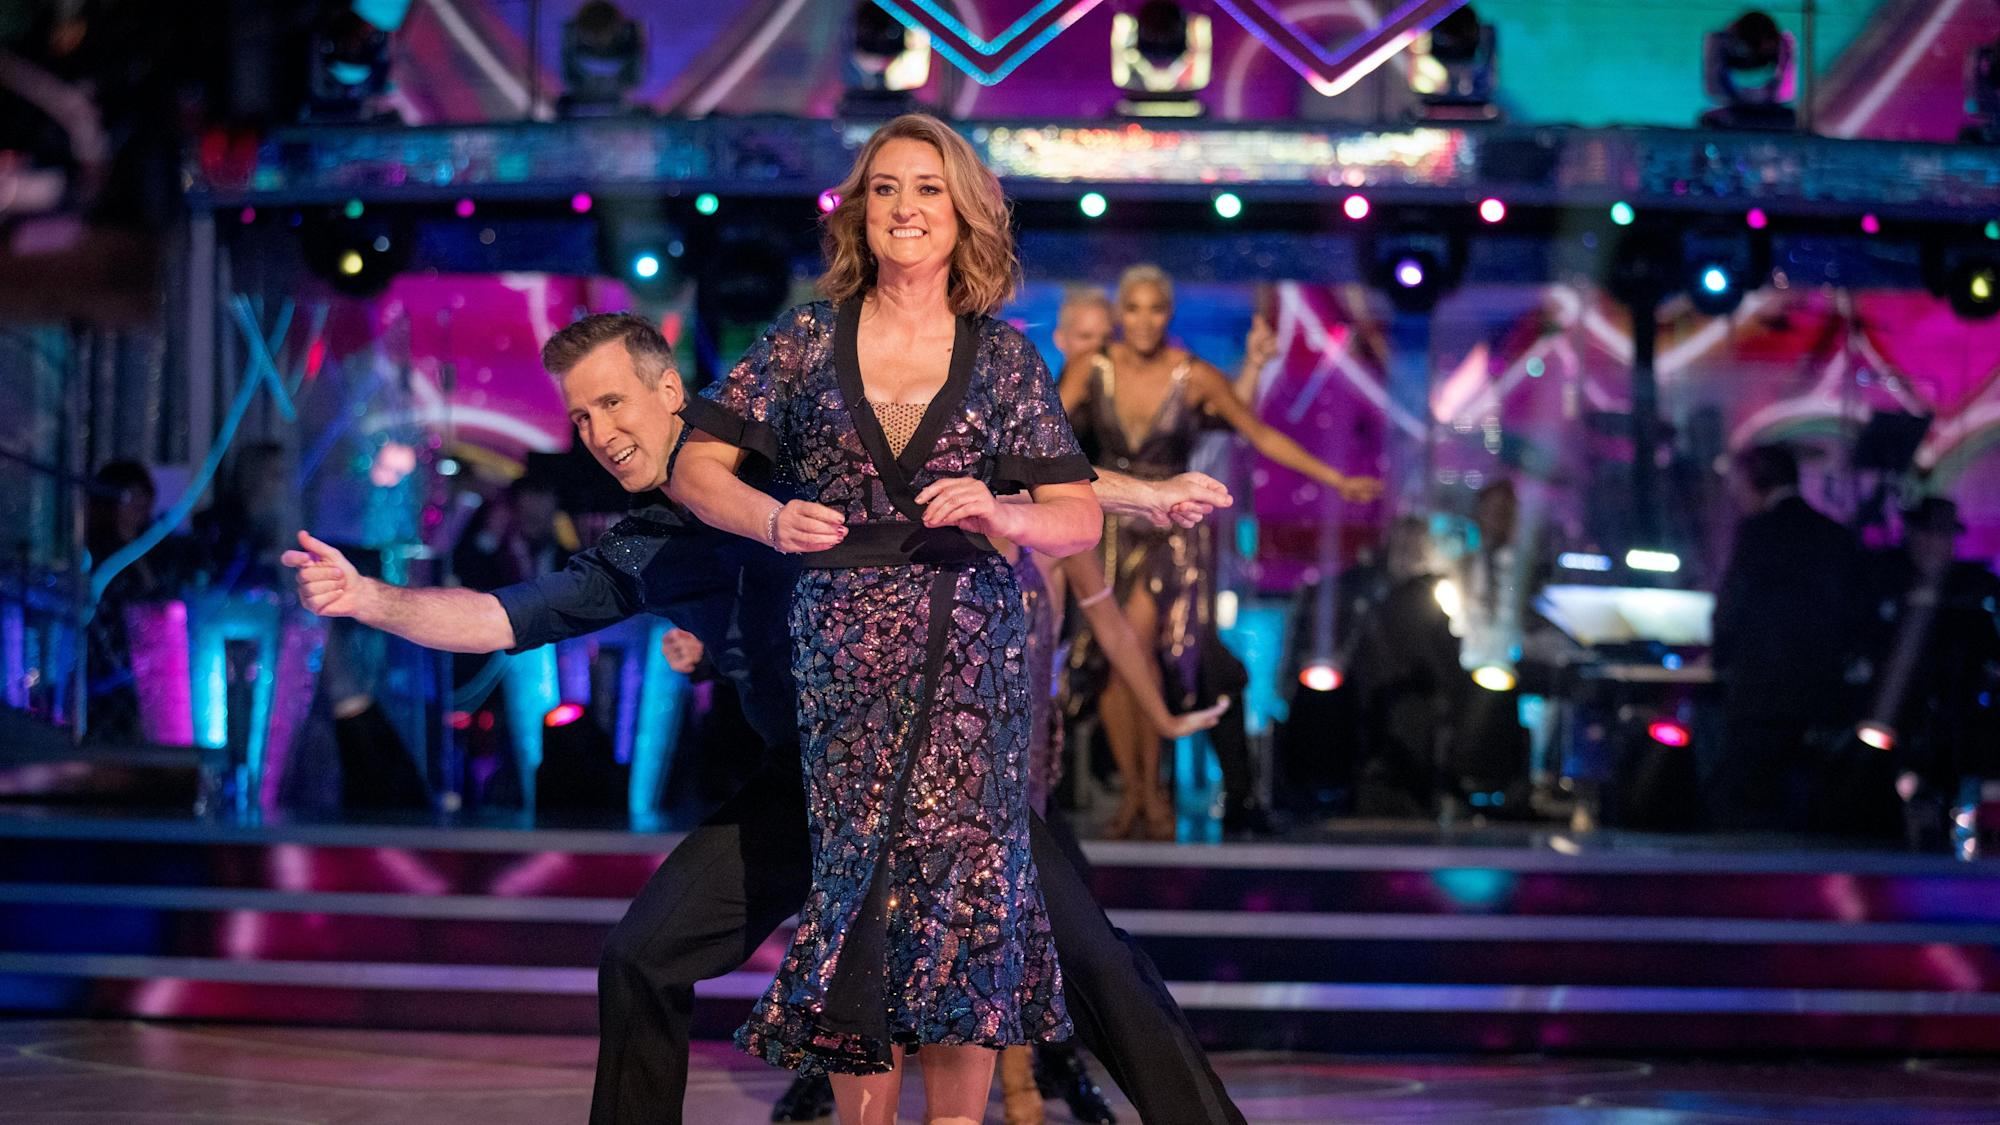 Jacqui Smith: It's so sad that Nicola Adams had to quit Strictly Come Dancing